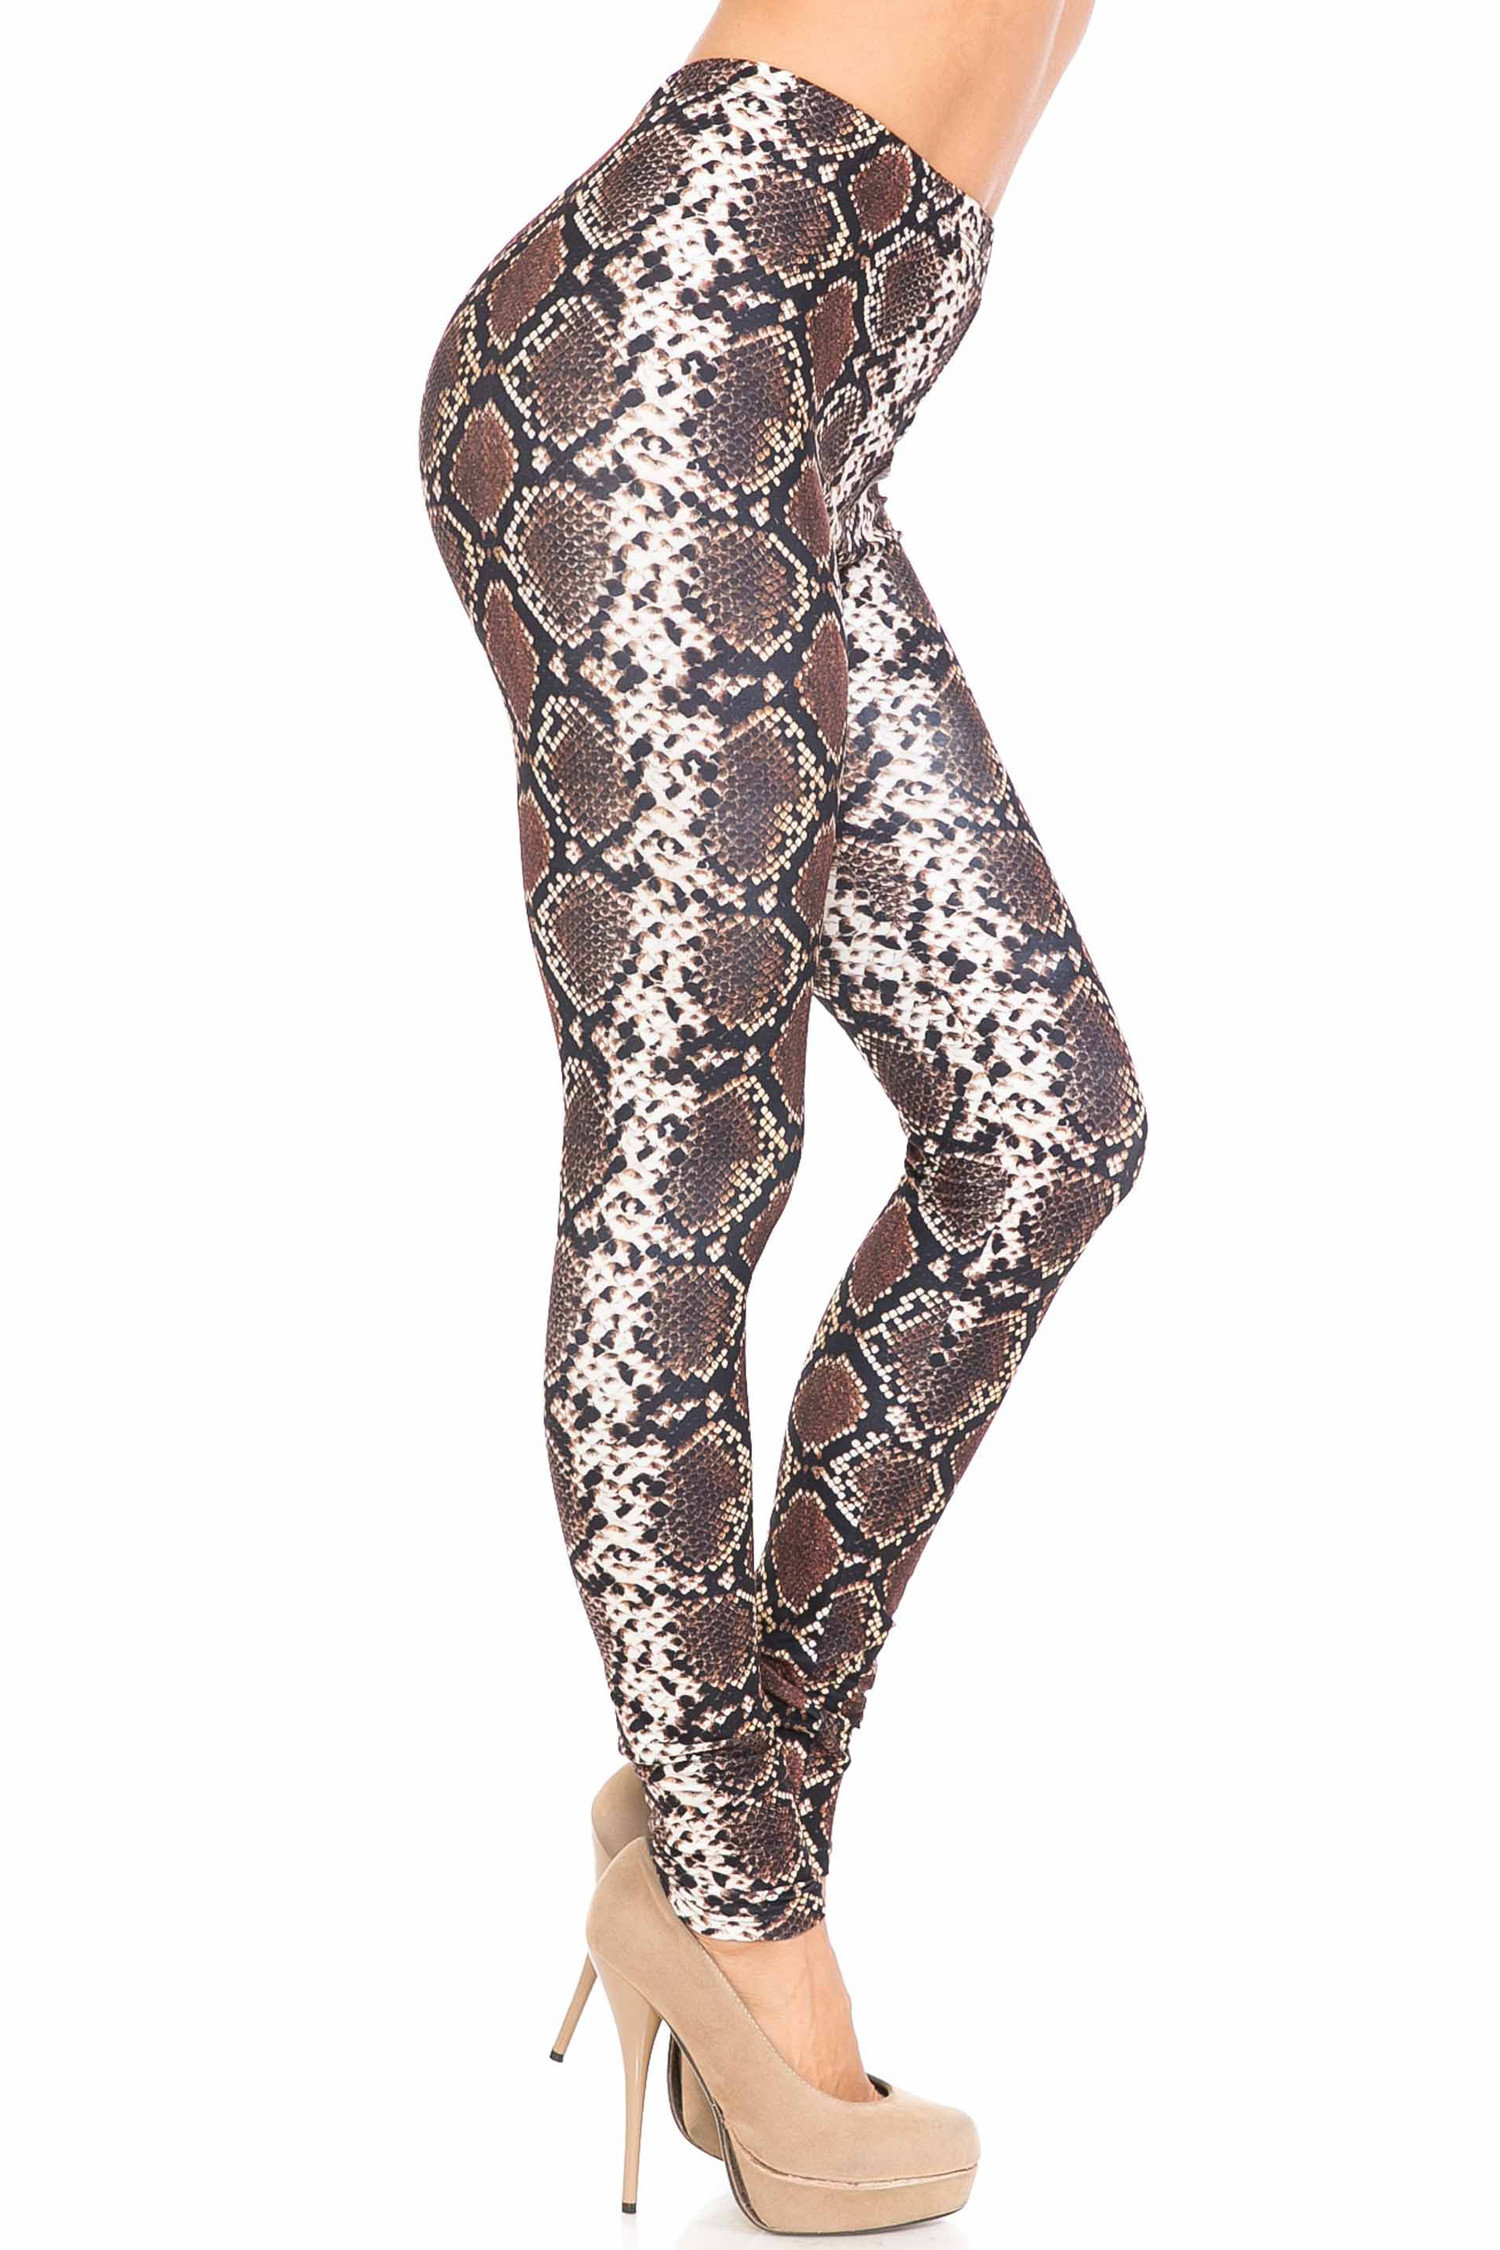 Right side of Creamy Soft  Brown Boa Snake Extra Plus Size Leggings - 3X-5X - USA Fashion™